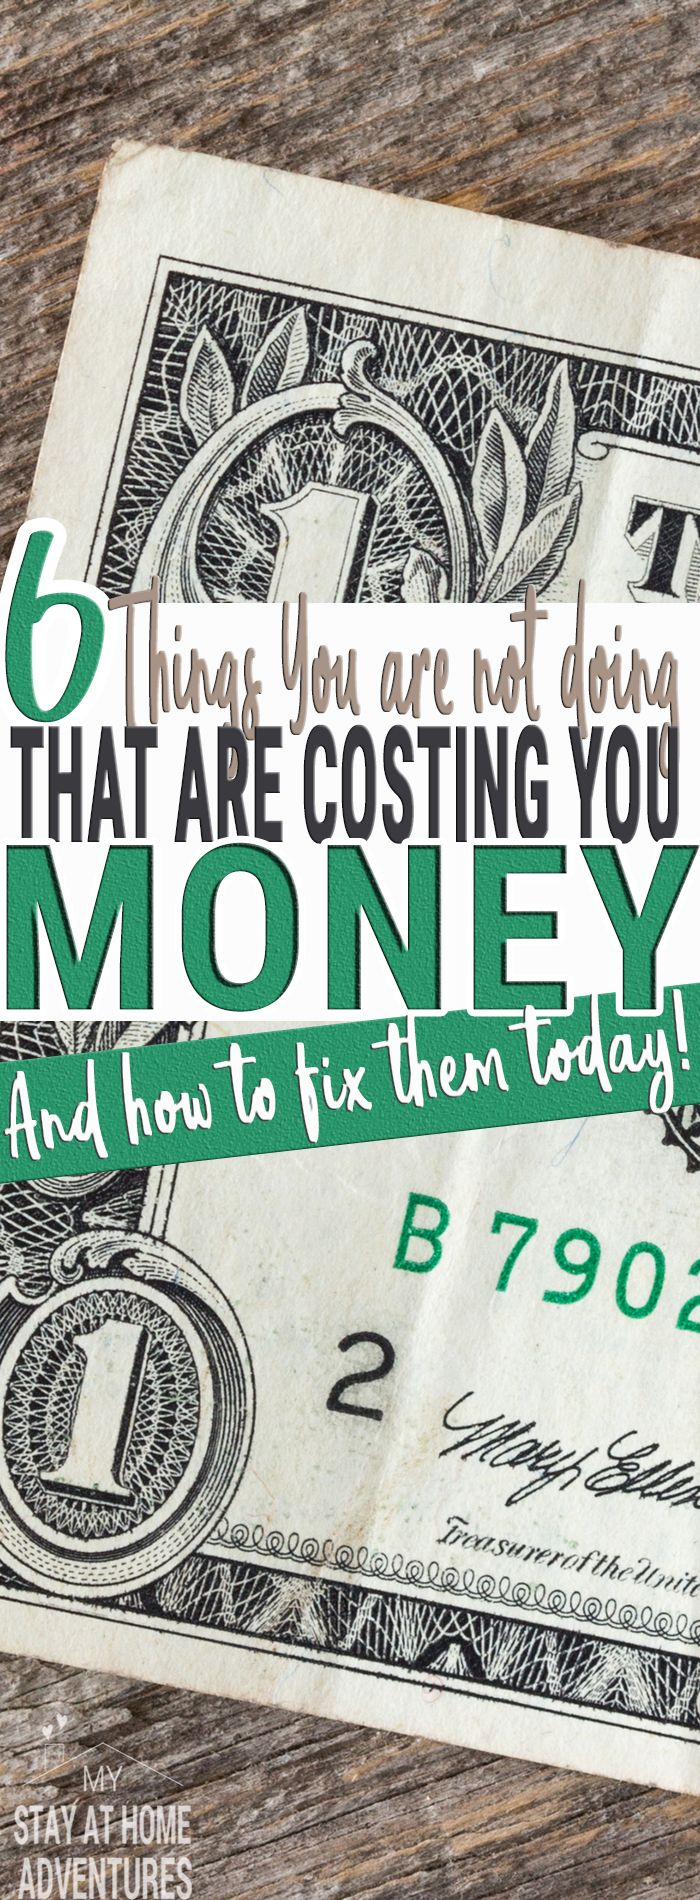 Stop what you are not doing because it is costing you money. Check out 6 things are not doing right now that are costing money as you read this!